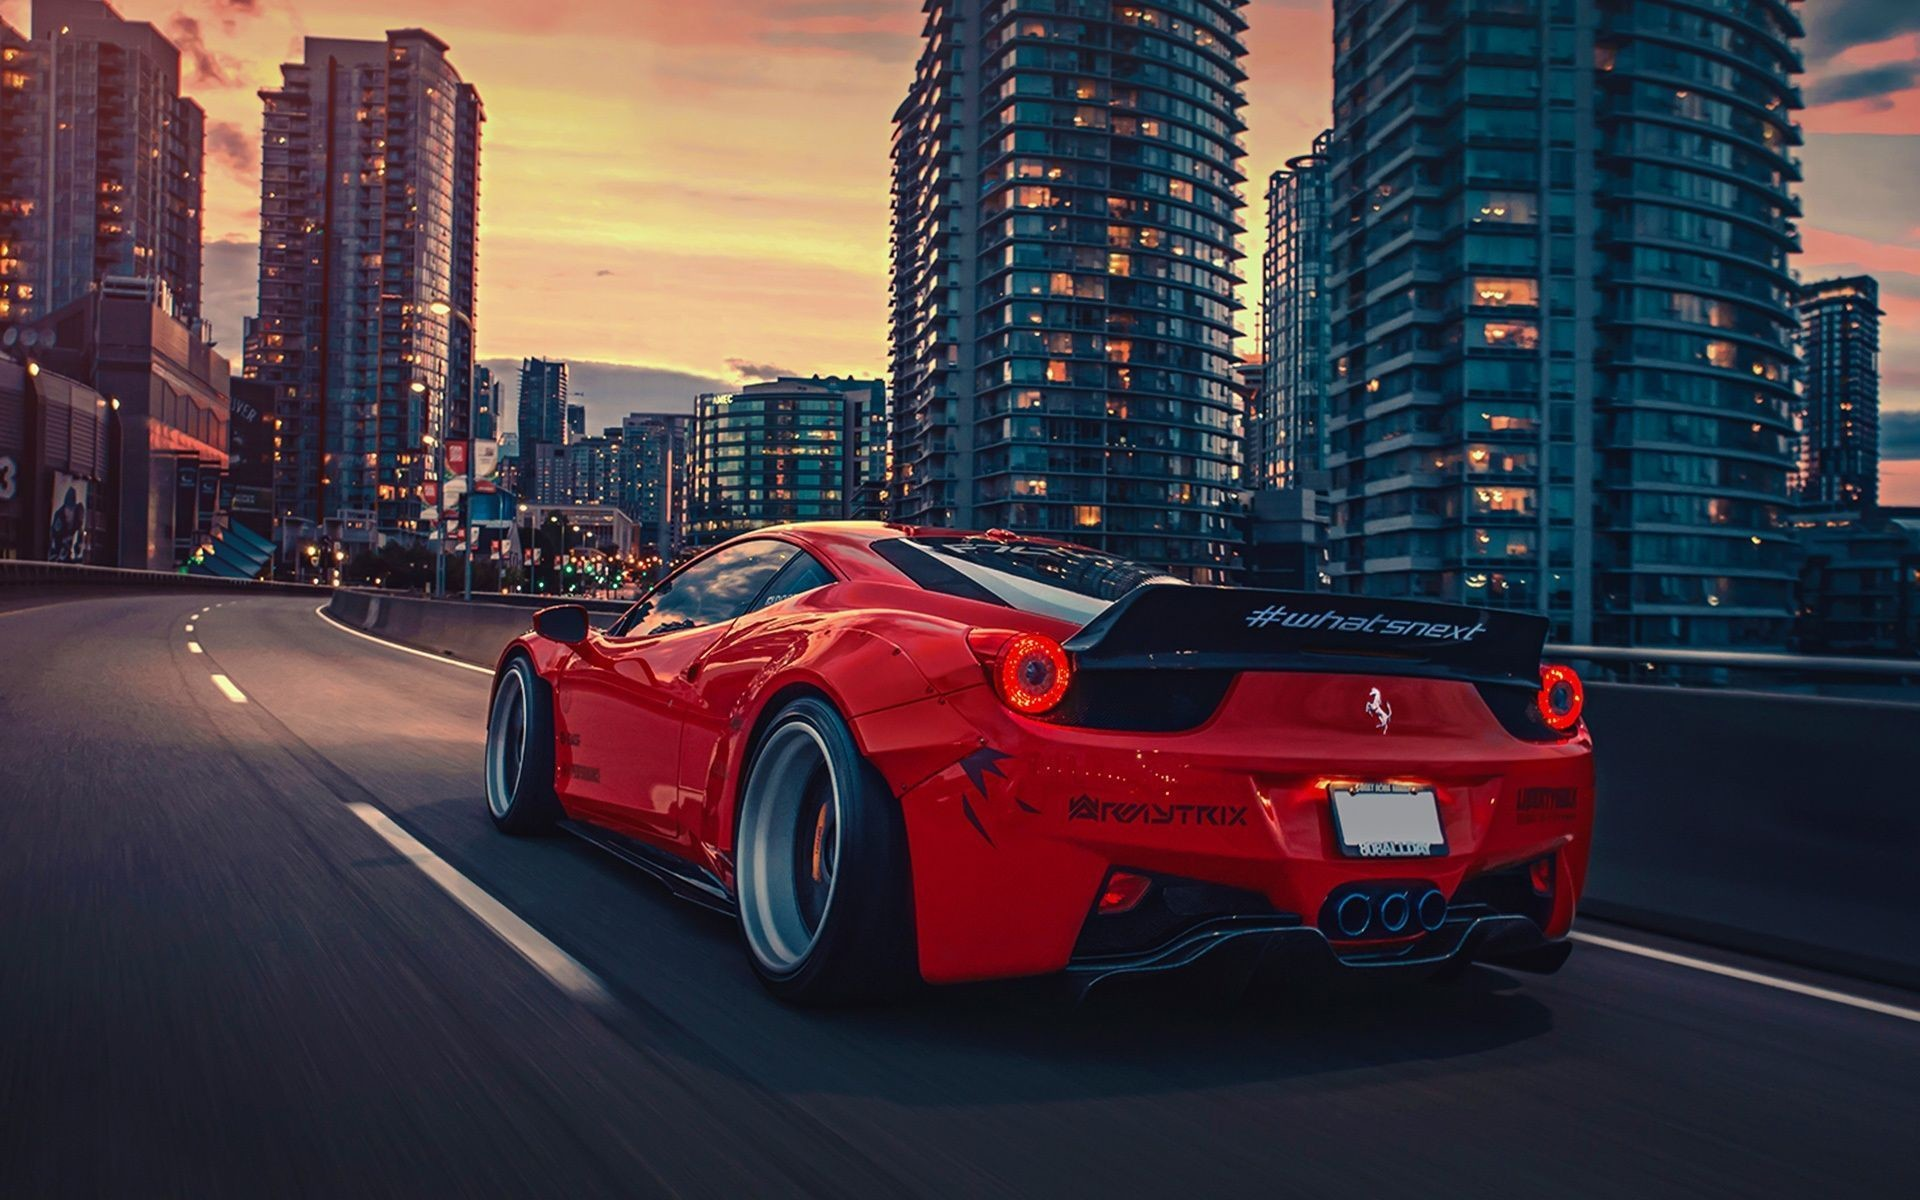 1920x1200 Ferrari 458 Liberty Walk Wallpaper